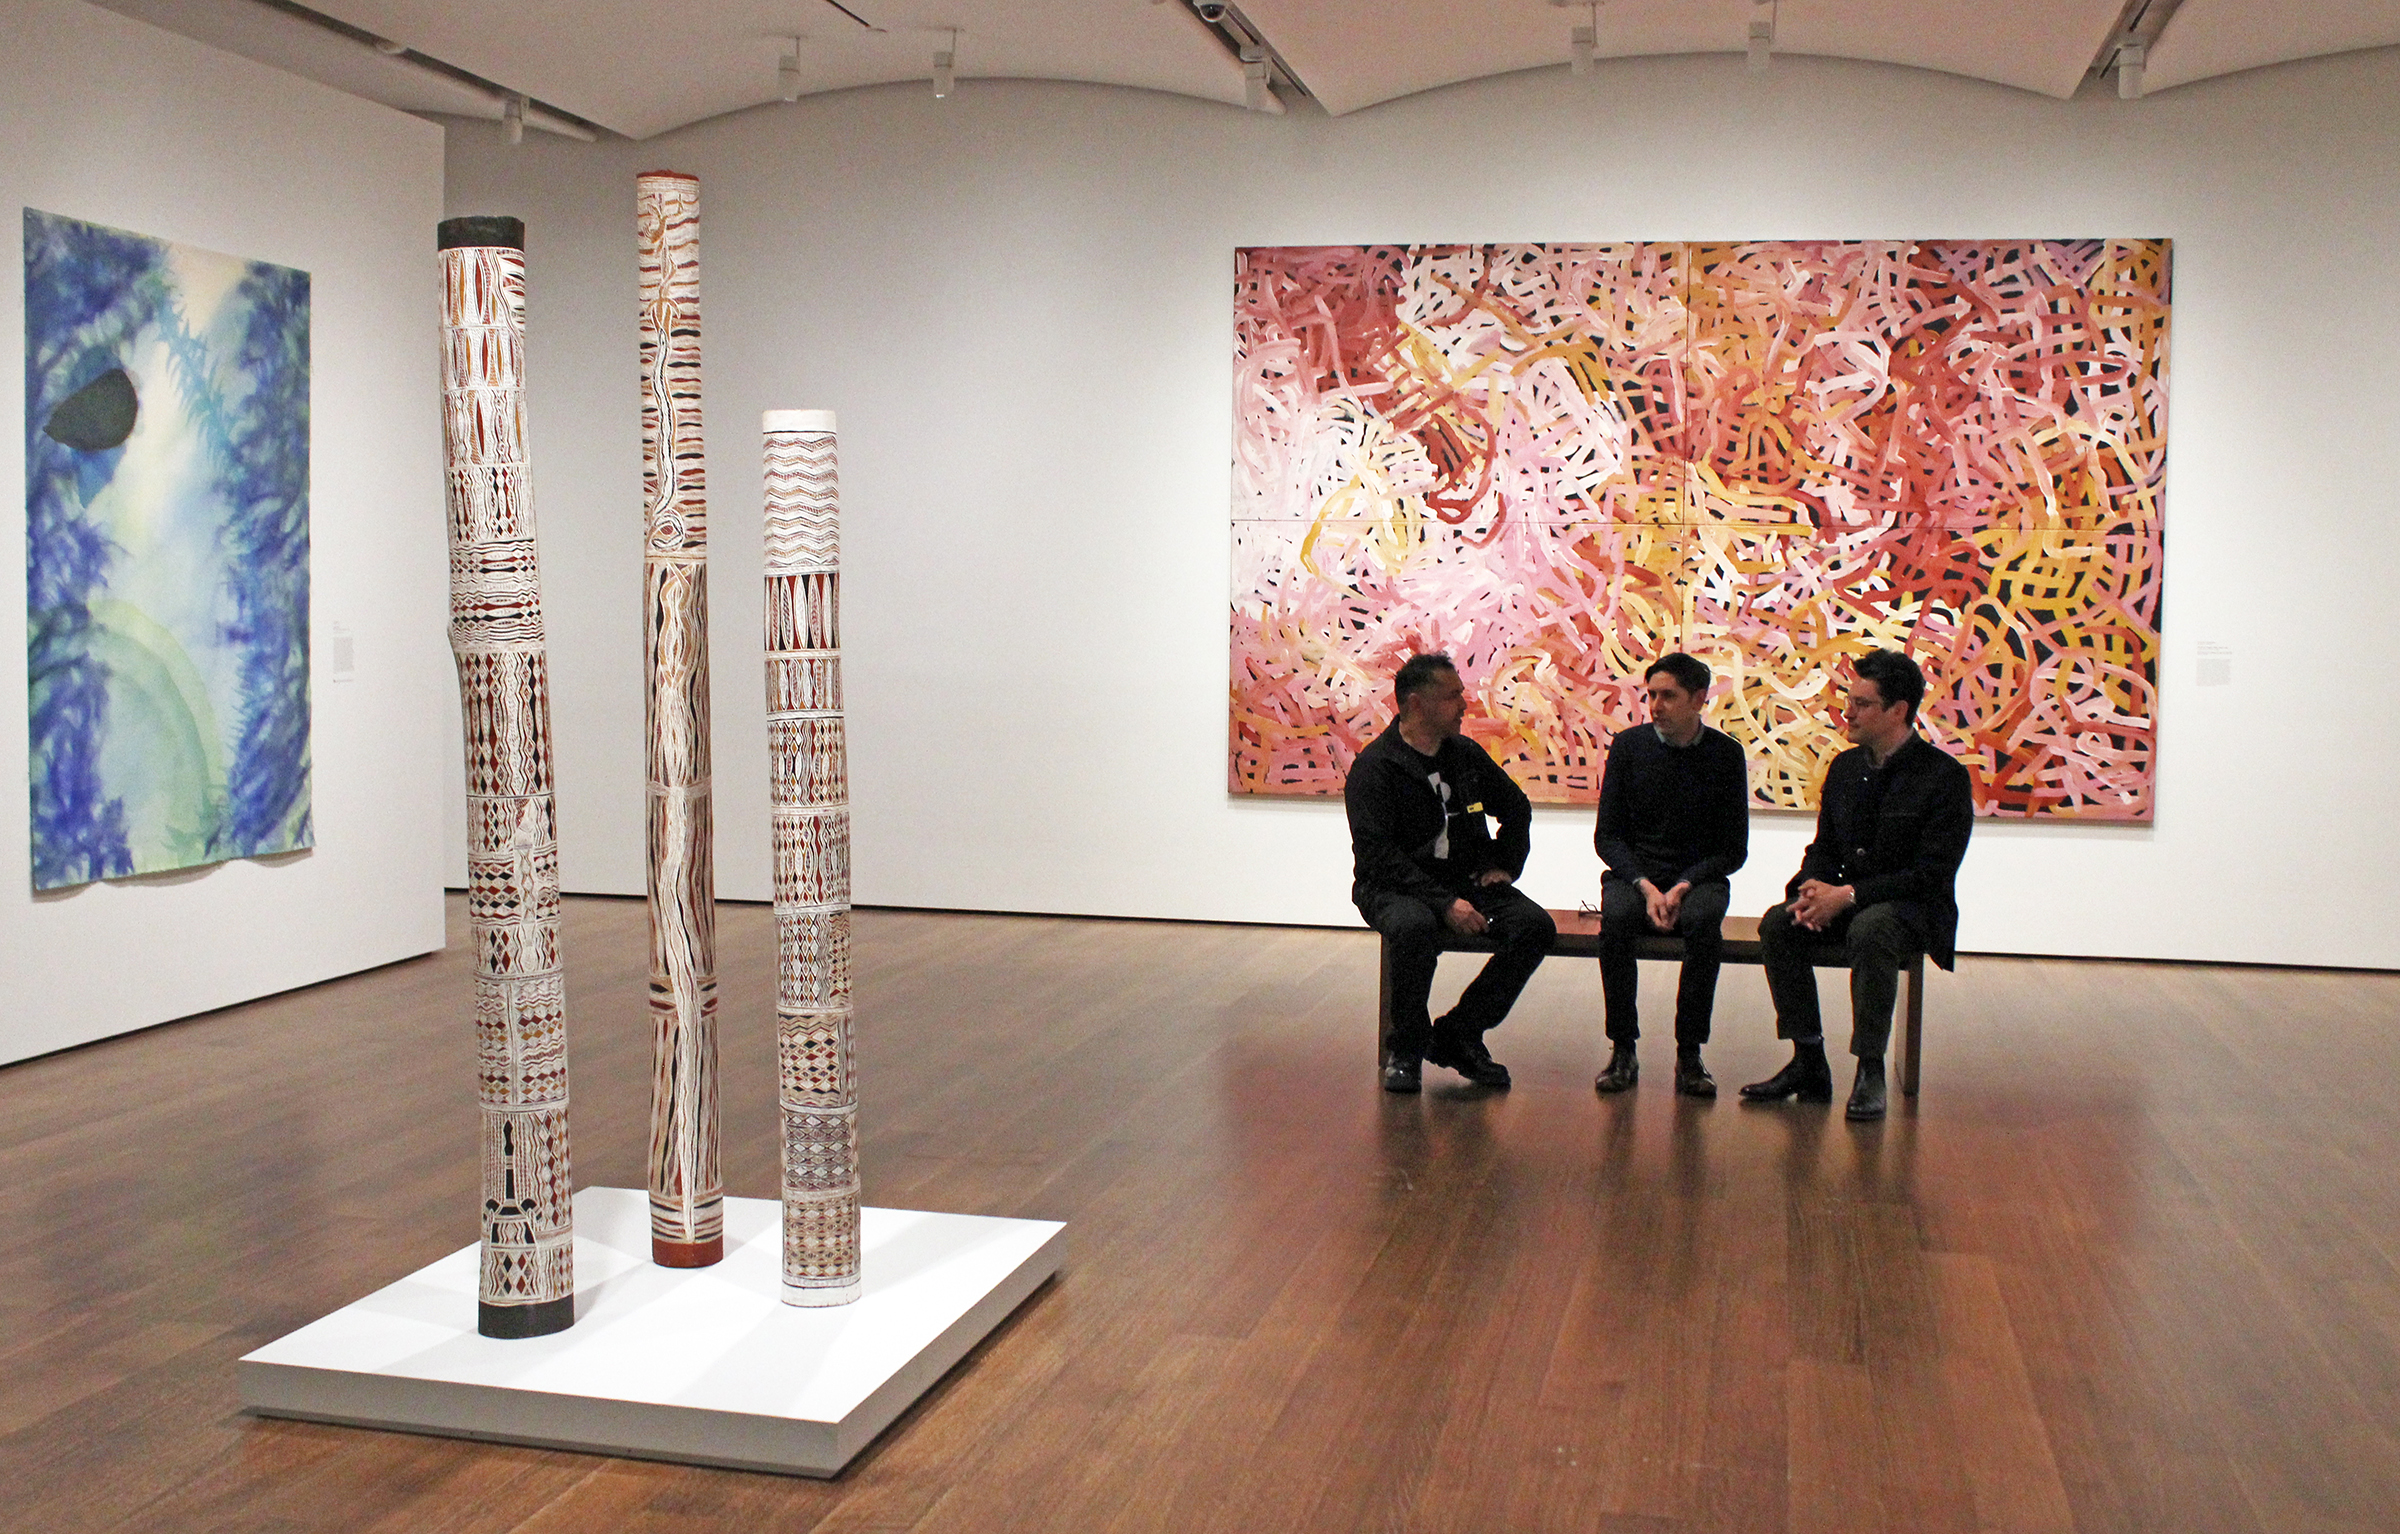 Three men sit on a bench in the middle of the exhibition gallery, in front of a colorful abstract painting of red, white, yellow and pink swirls.